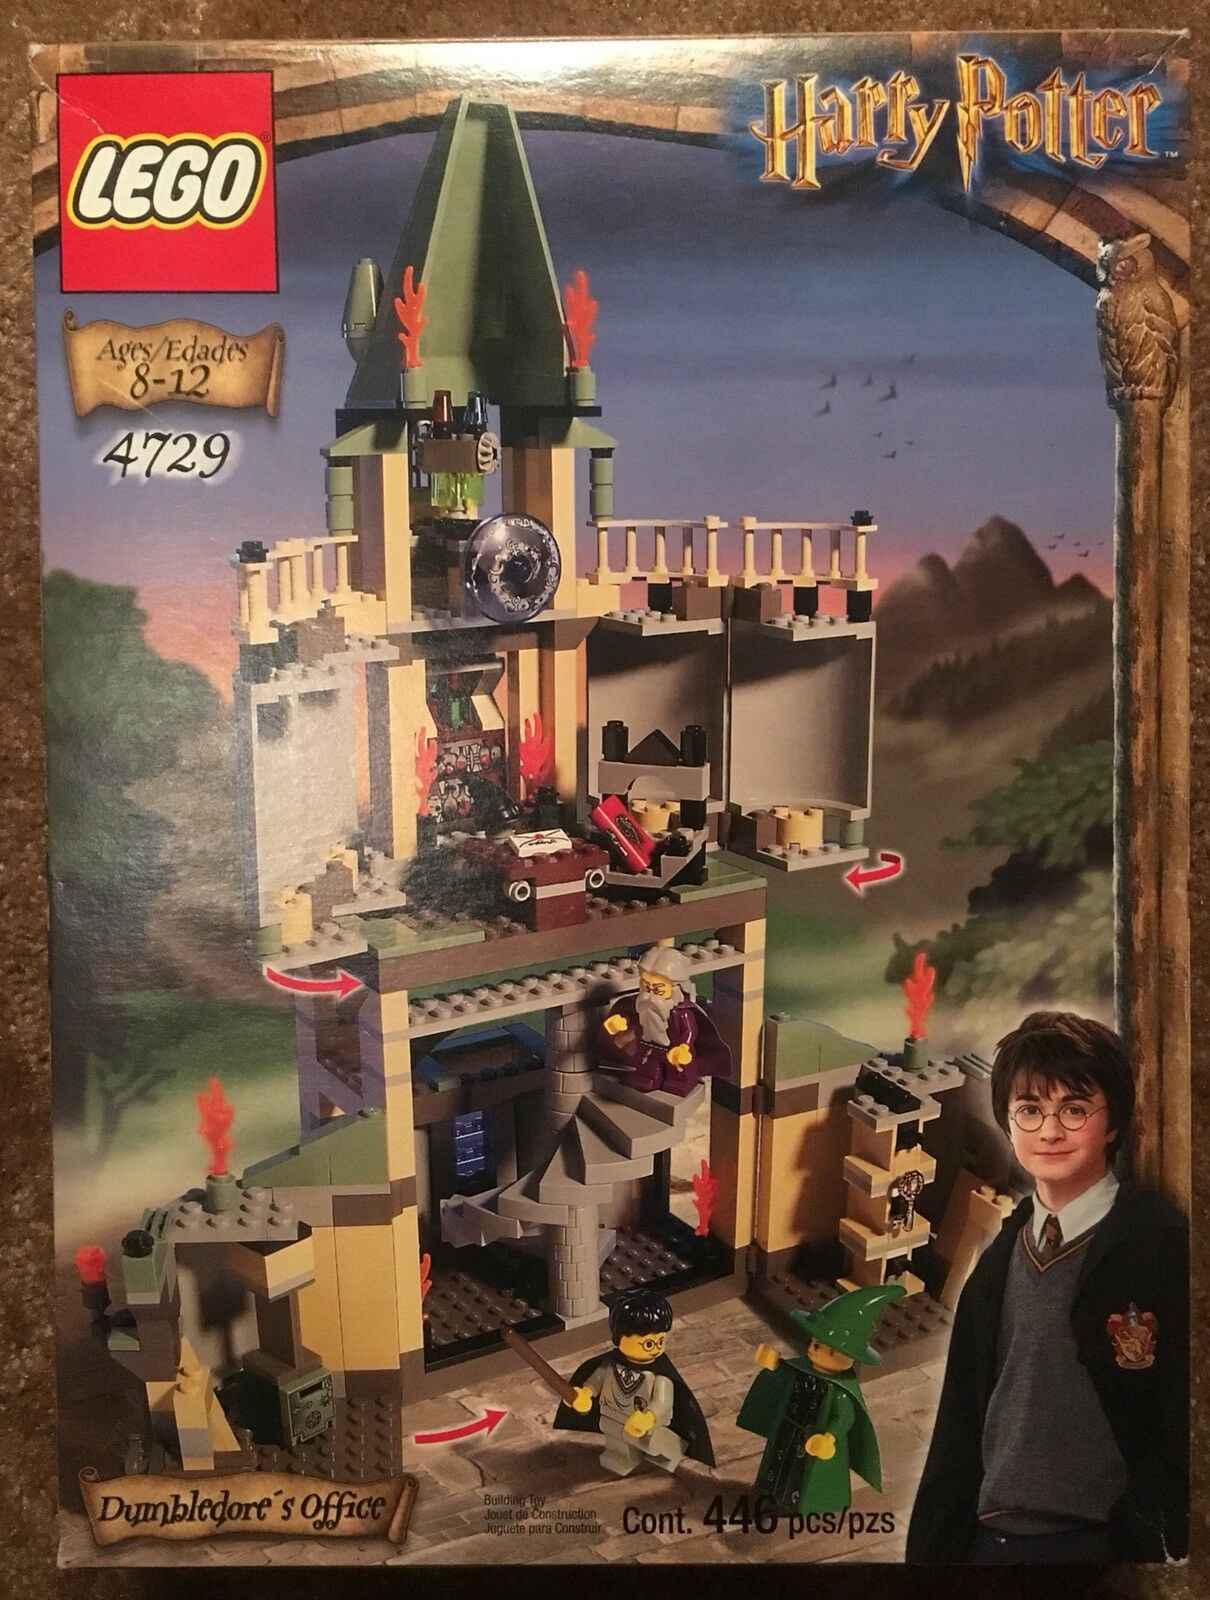 LEGO Harry Potter Dumbledore's Office (4729) COMPLETE W/ BOX & DIRECTIONS